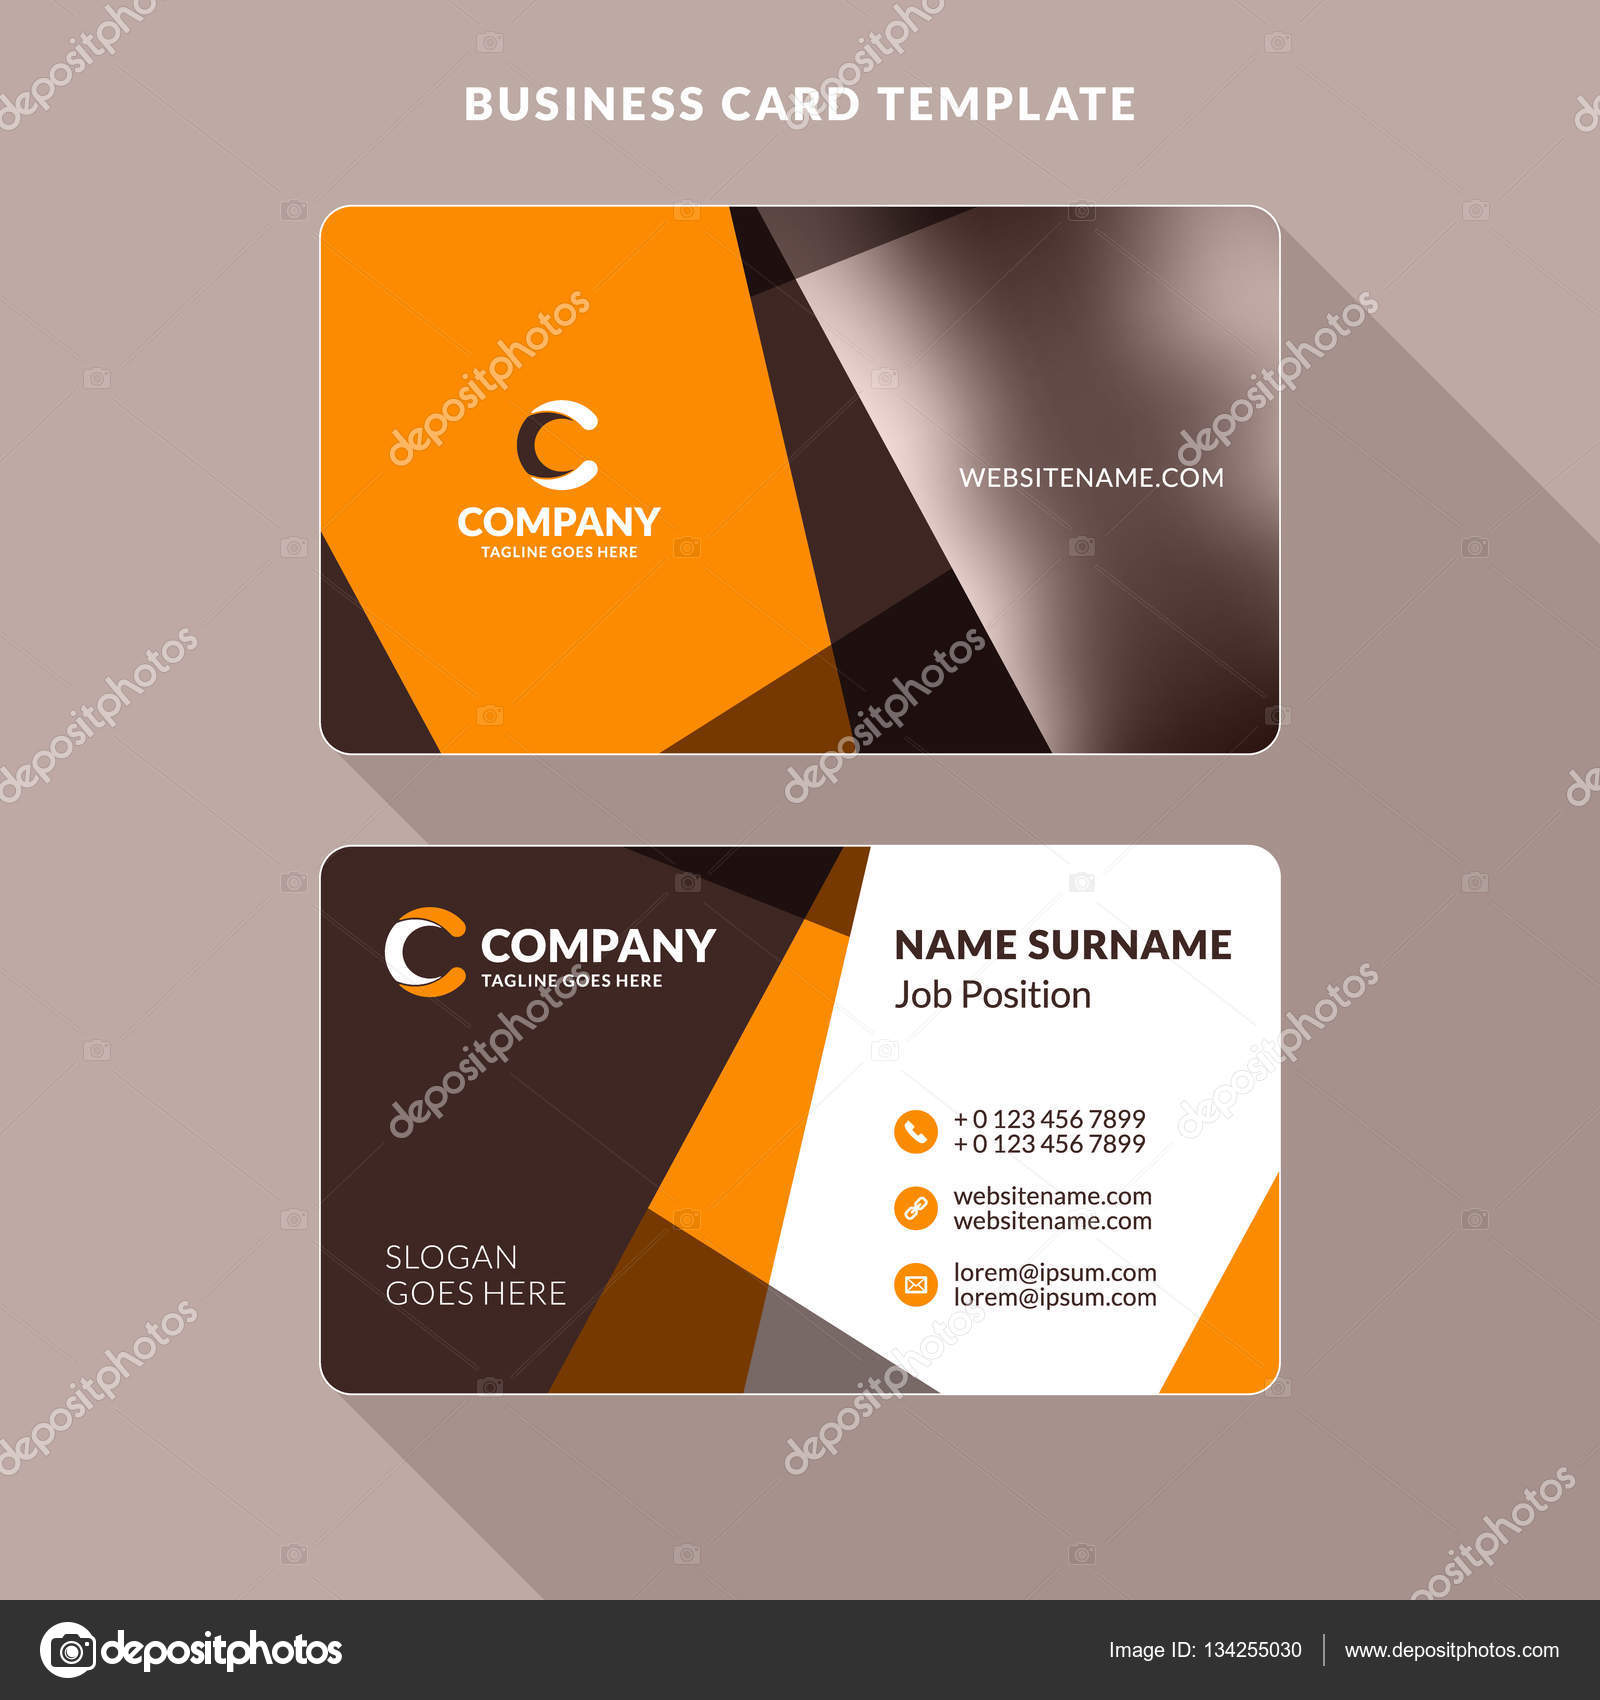 Creative and clean double sided business card template orange and creative and clean double sided business card template orange and brown colors flat reheart Image collections